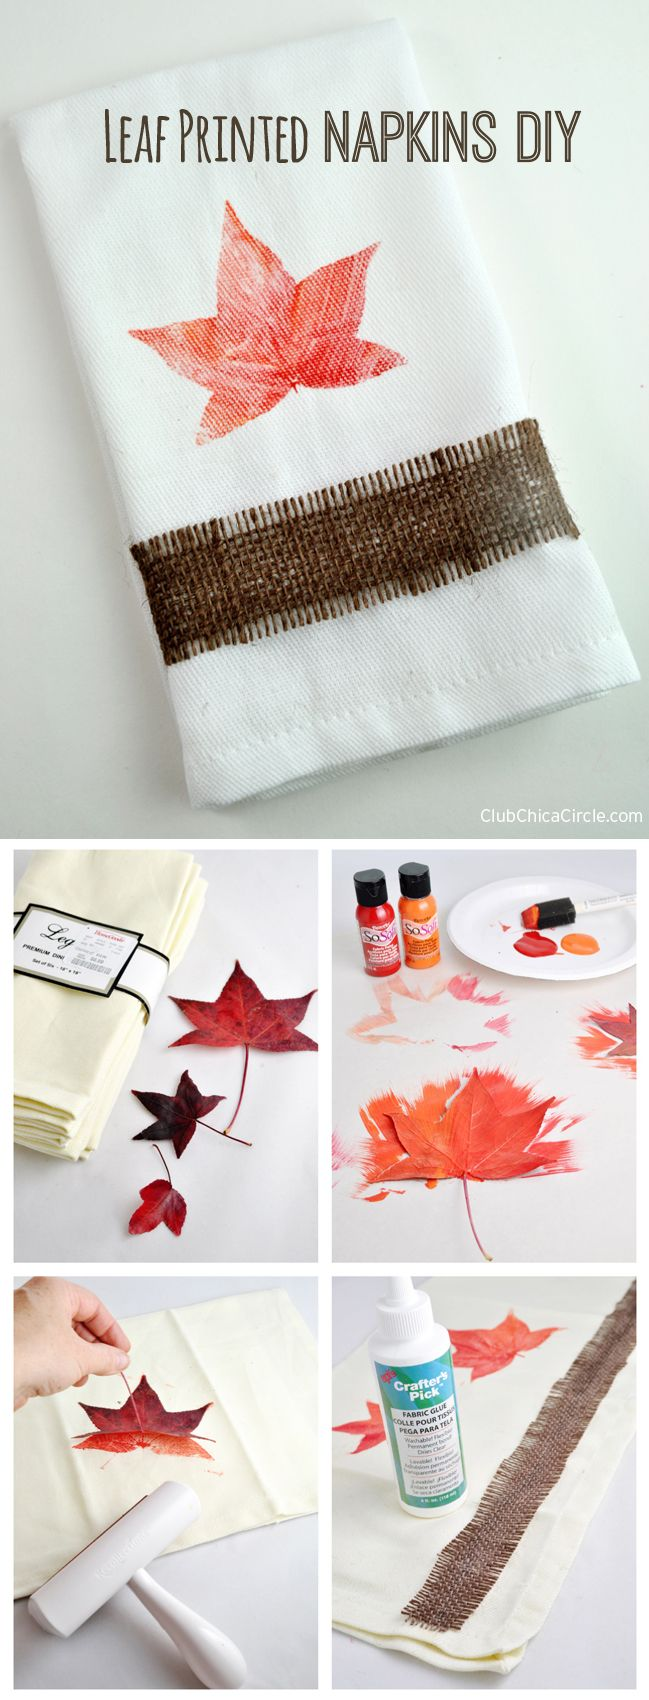 Leaf Printed Napkins DIY and Craft Idea - print real leaves onto cloth with soft fabric paint. So pretty!